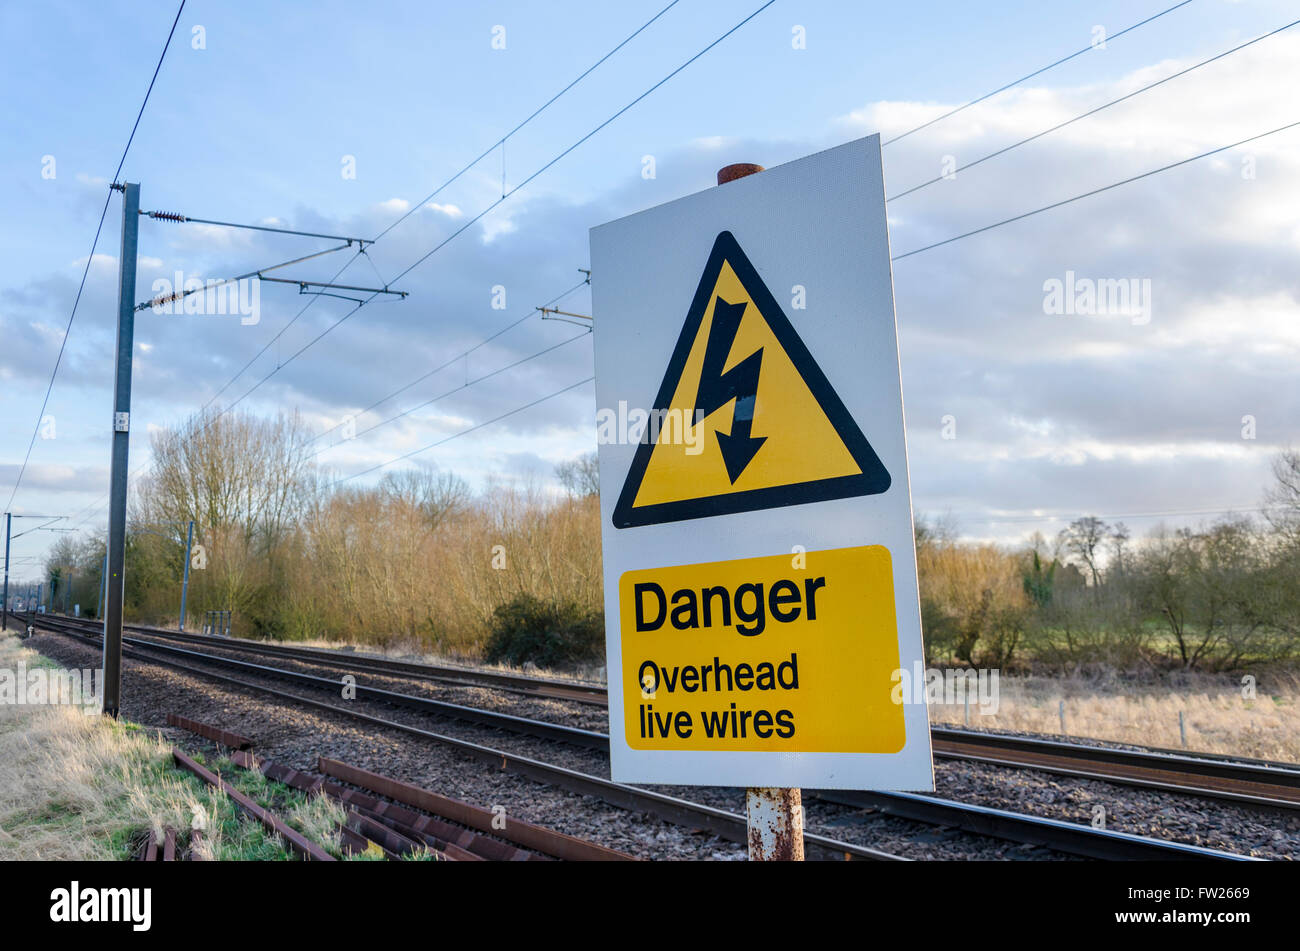 Danger overhead live wires sign next to train tracks - Stock Image